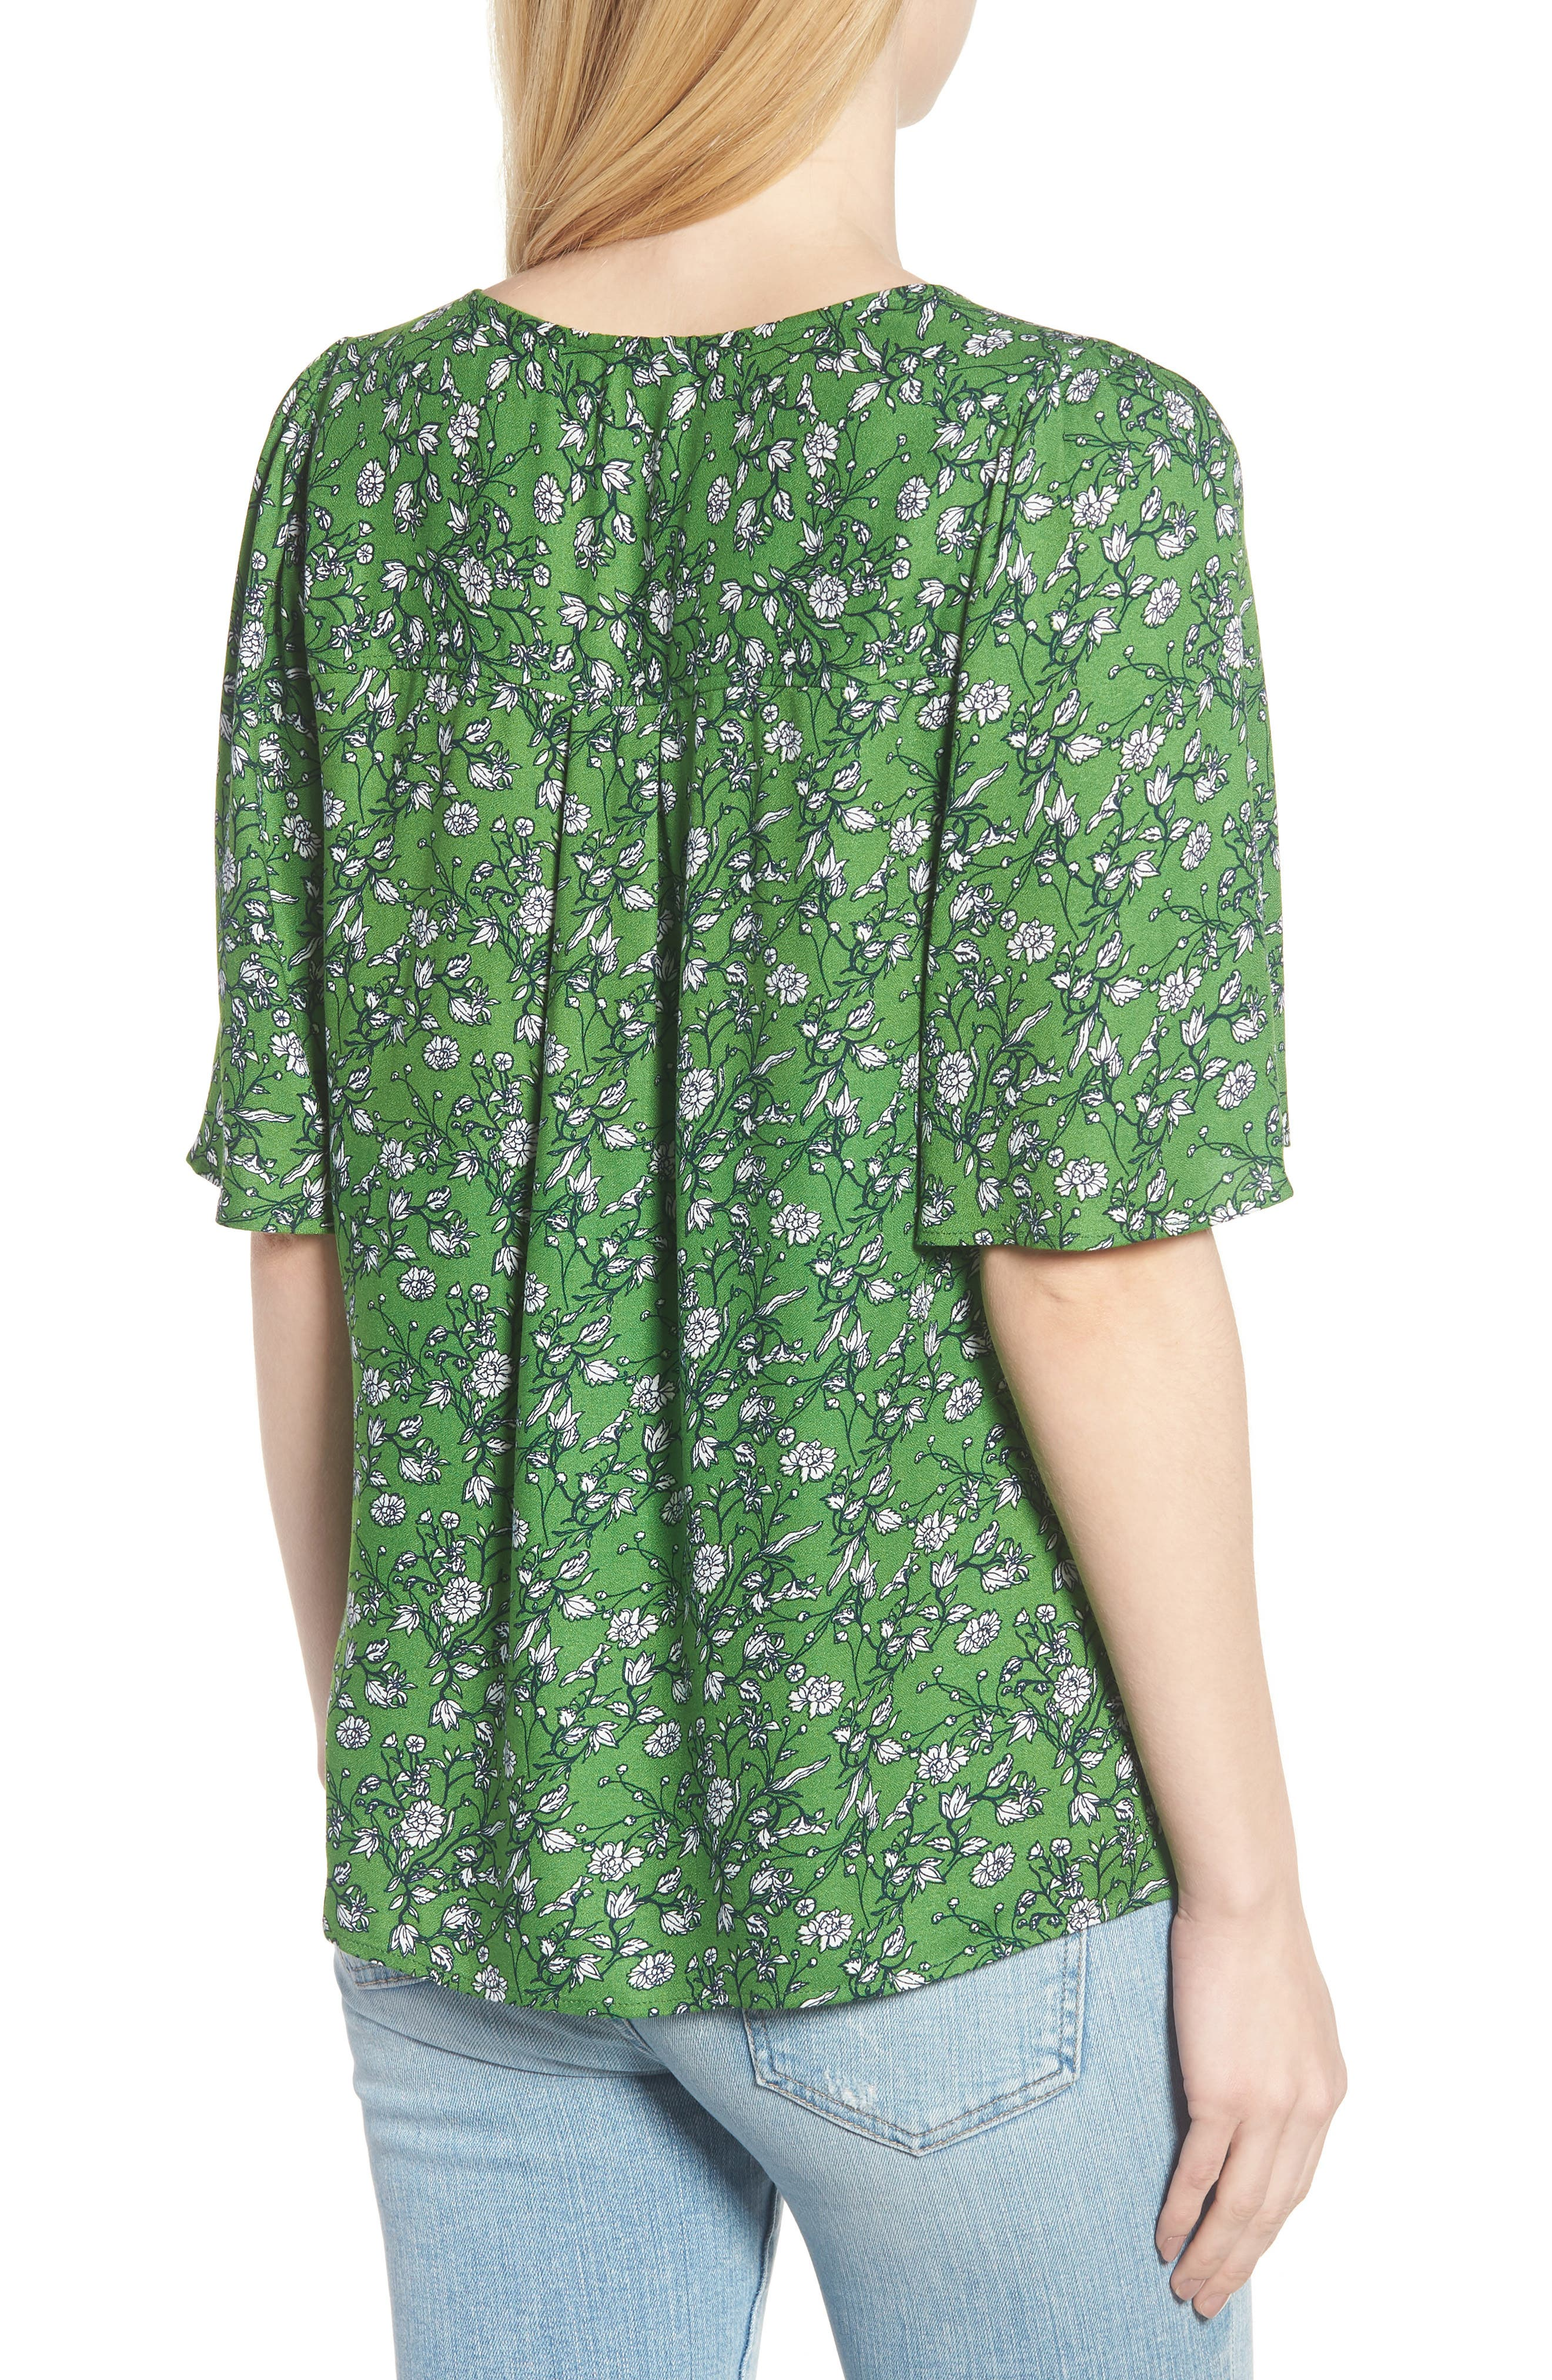 Button Front V-Neck Top,                             Alternate thumbnail 2, color,                             GREEN CANOPY FLOWER BRANCHES